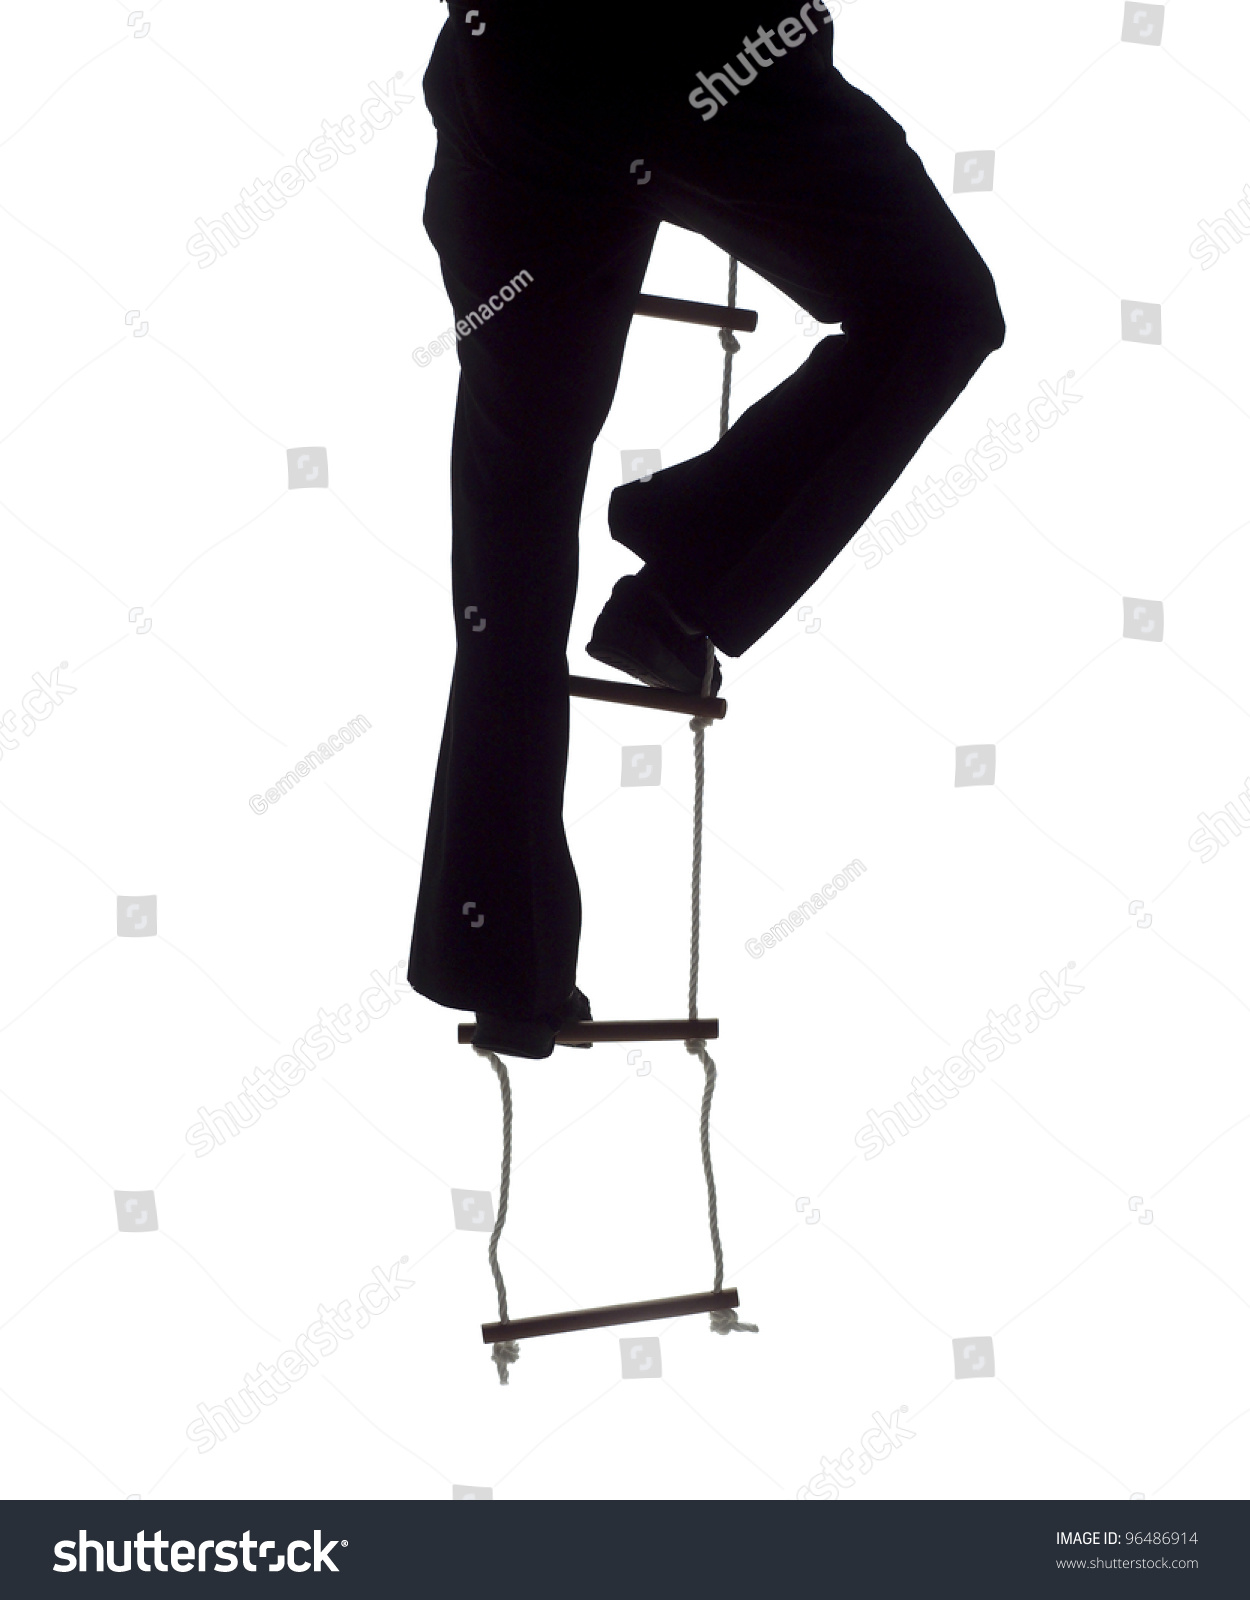 climbing up the rope ladder stock photo shutterstock climbing up the rope ladder preview save to a lightbox